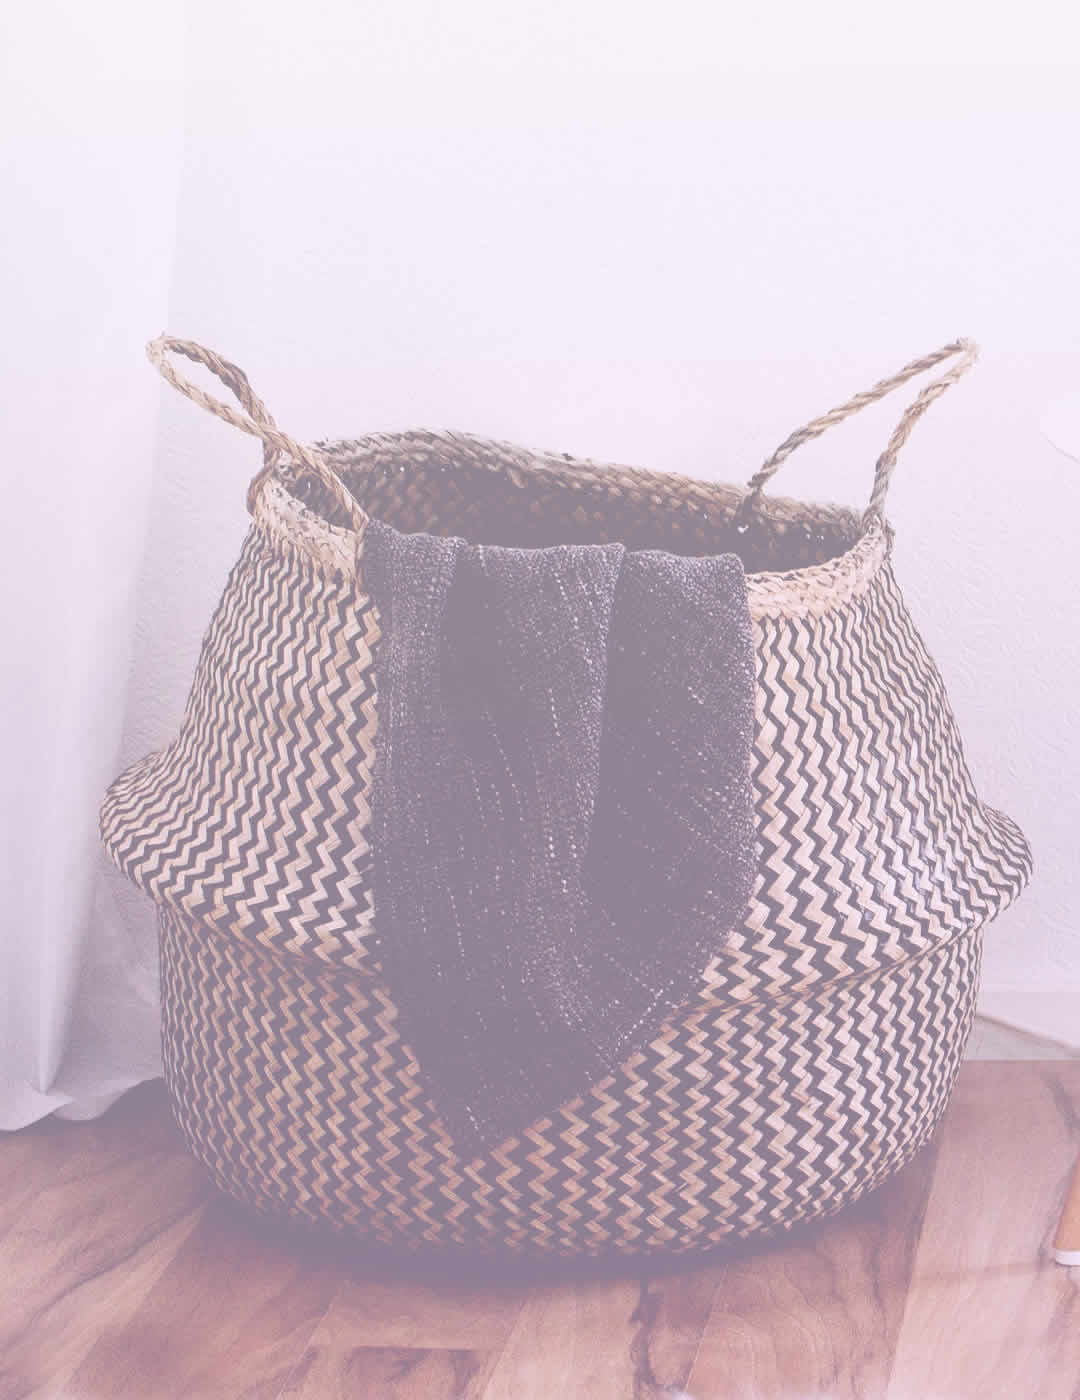 Woven basket for home organization